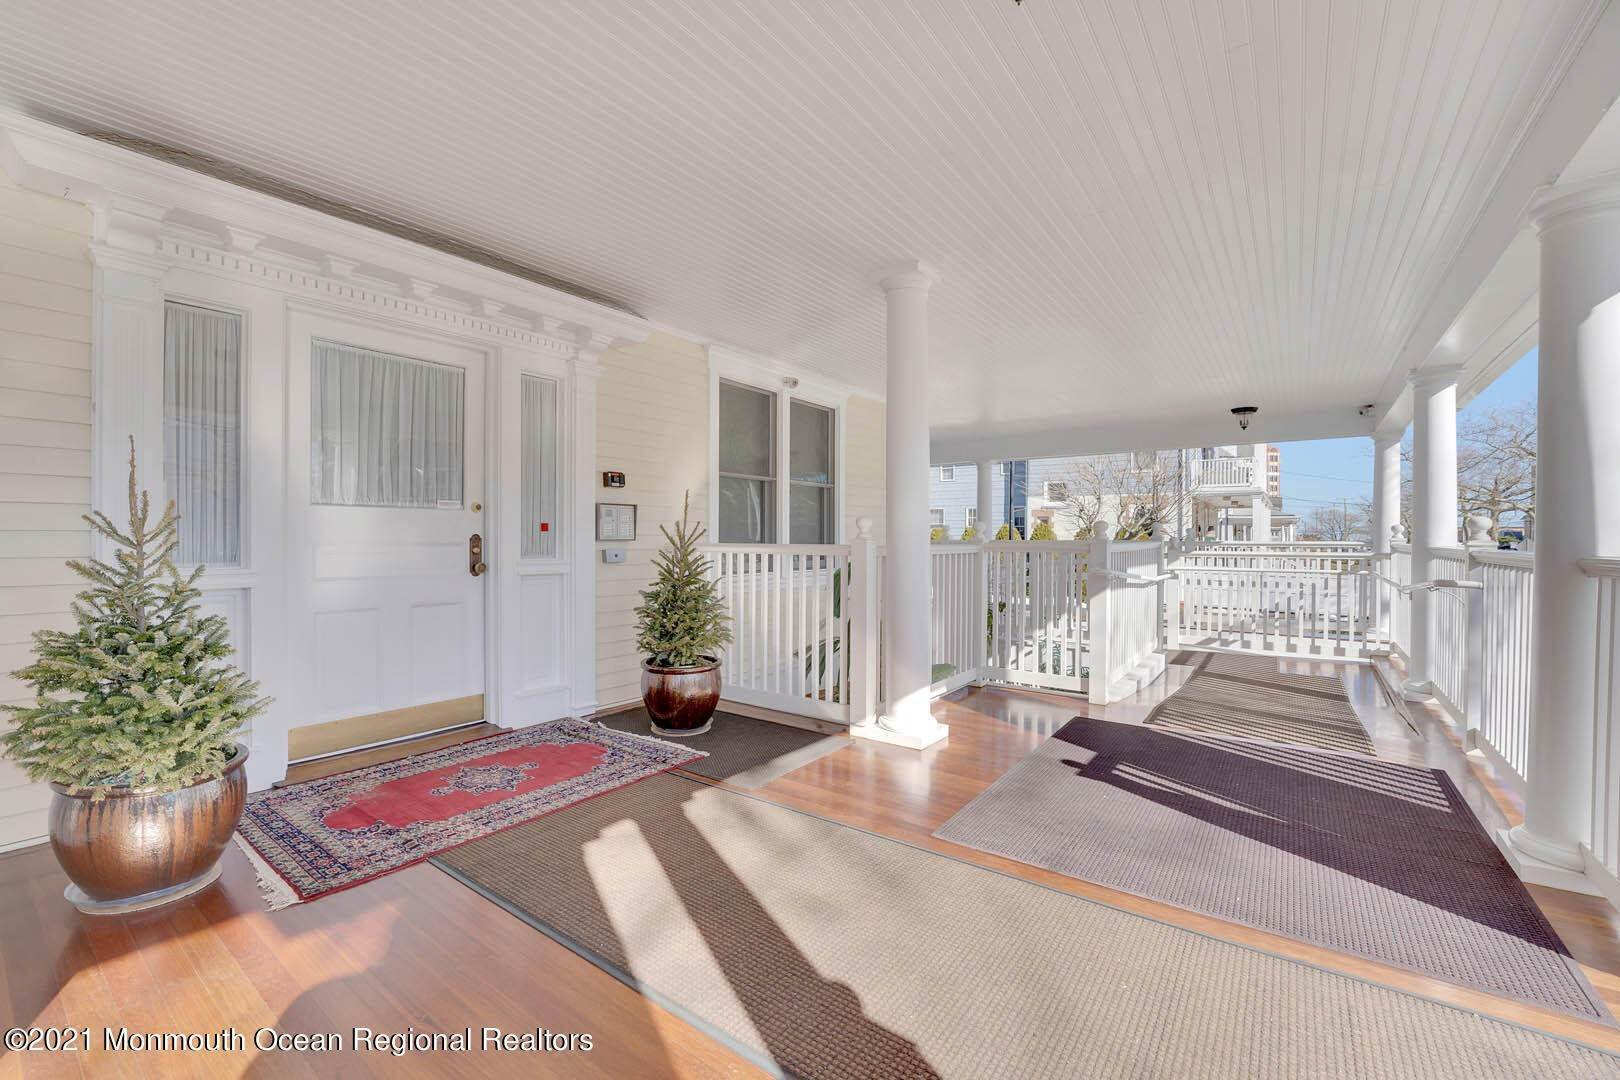 Condominiums for Sale at 317 6th Avenue Asbury Park, New Jersey 07712 United States